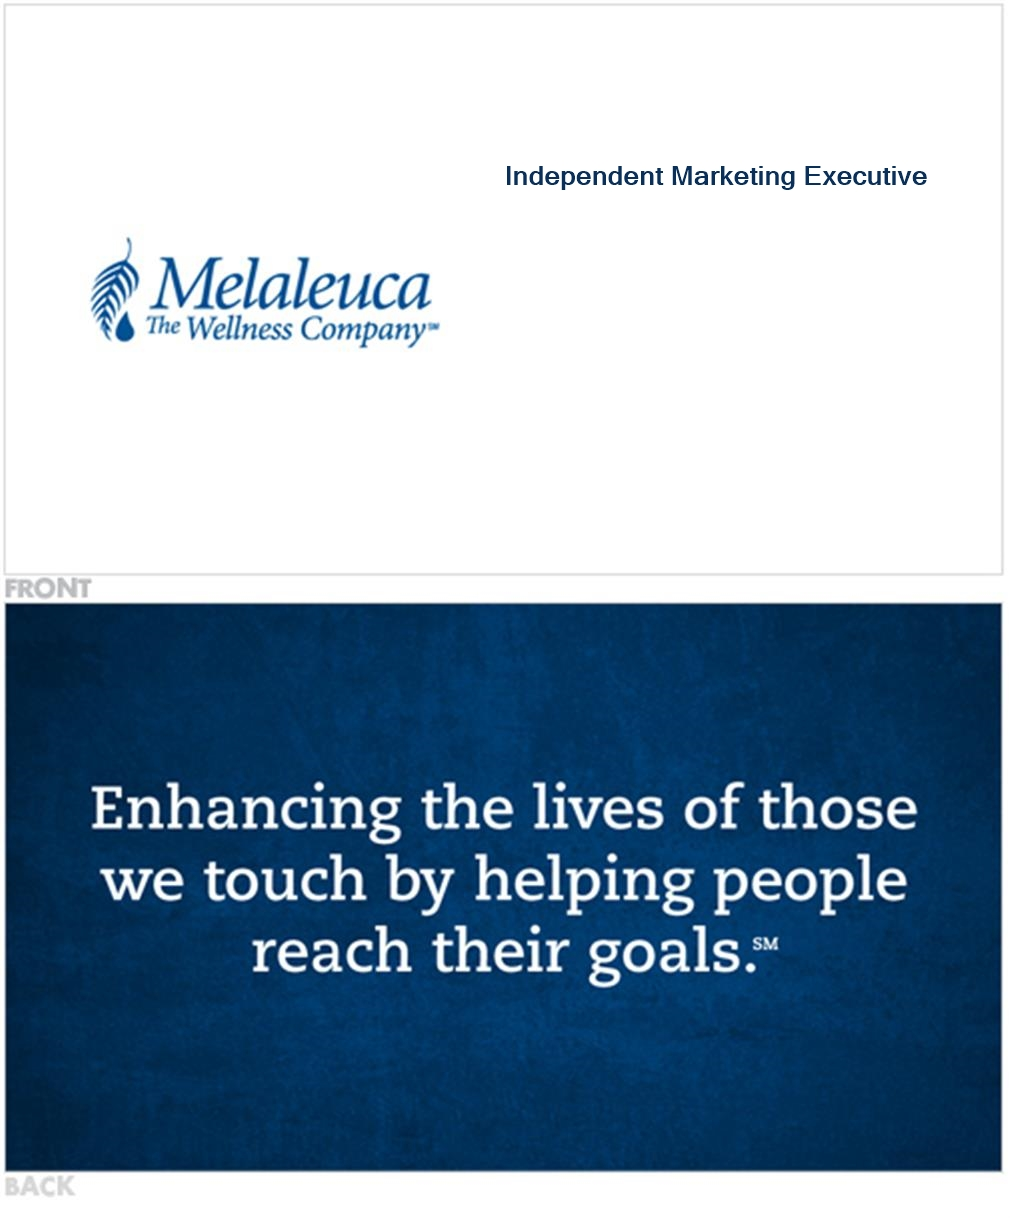 Melaleuca Business Cards - Mission Statement, Blue - Melaleuca